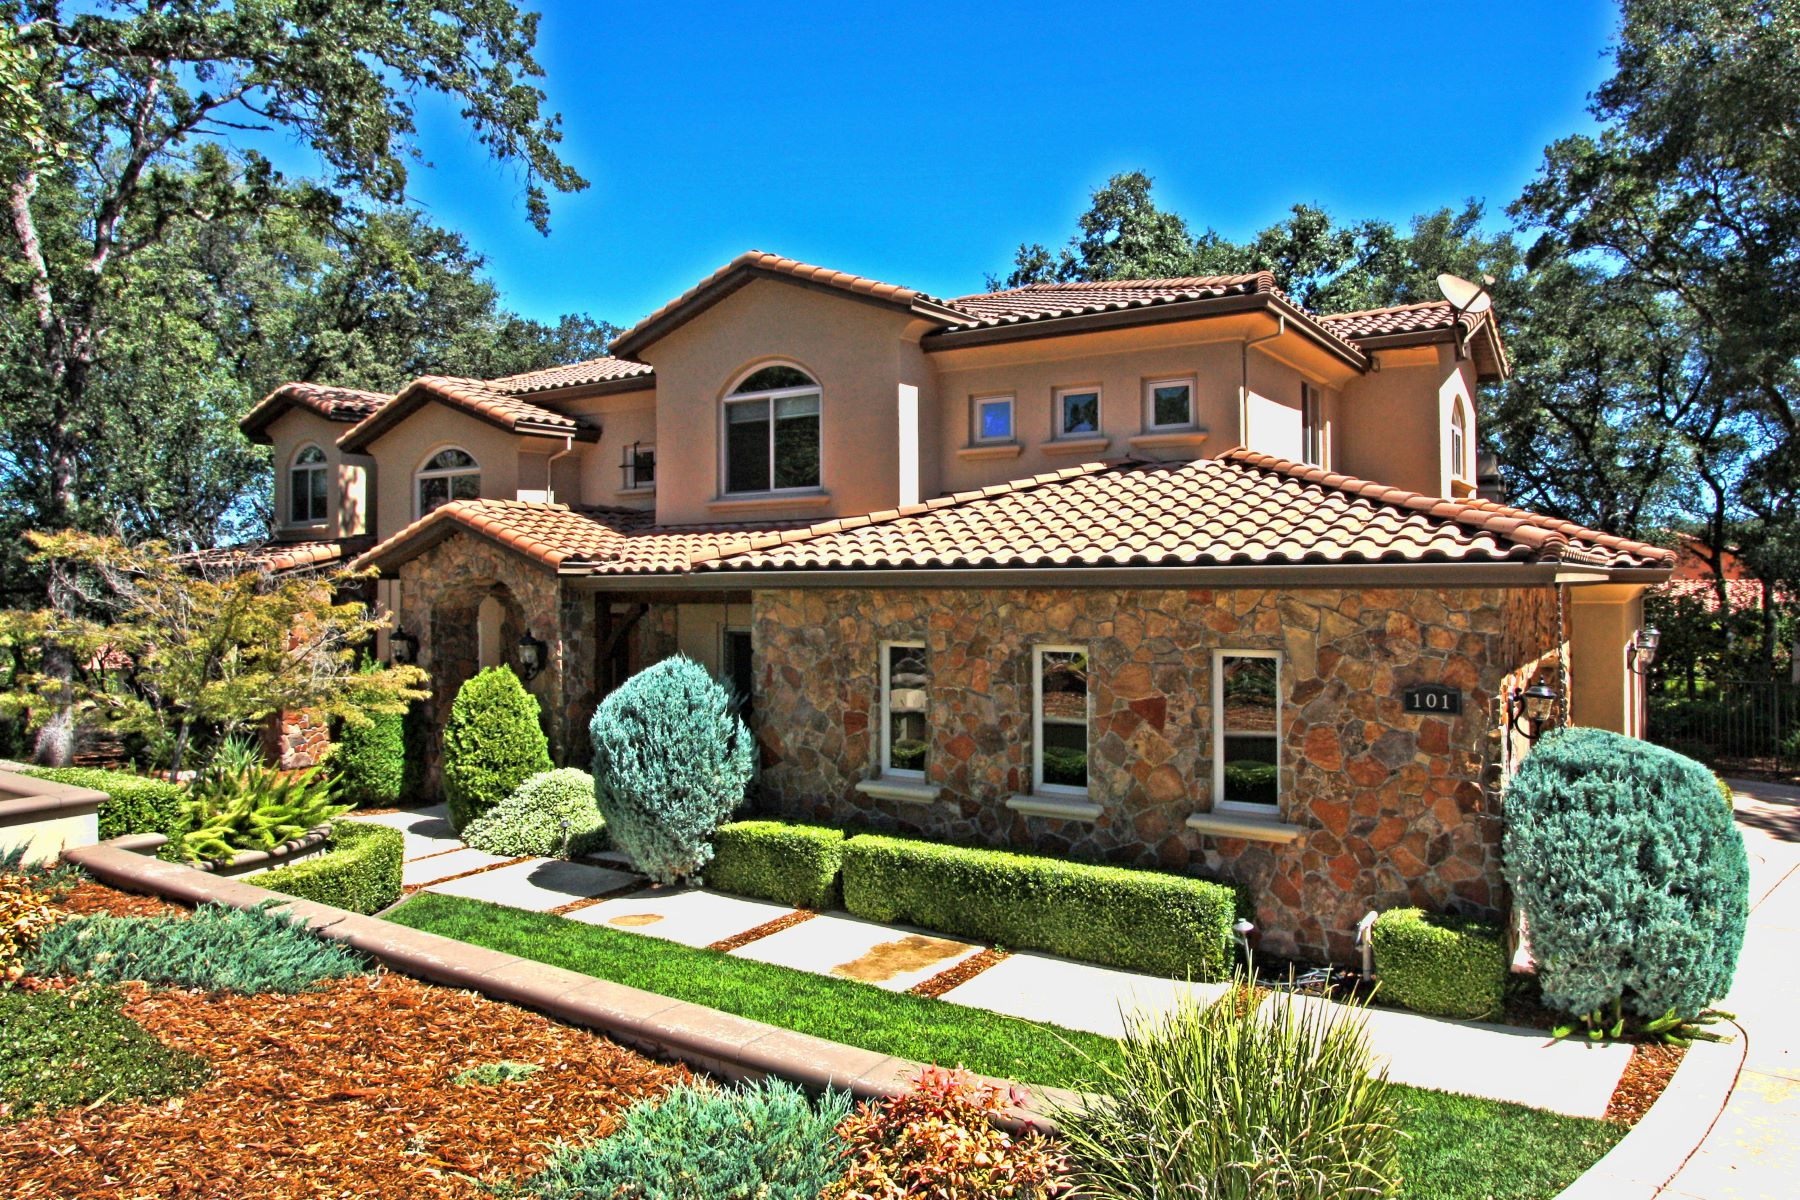 واحد منزل الأسرة للـ Sale في Captivating custom home within prestigious Serrano Country Club 101 Martini Court El Dorado Hills, California 95762 United States